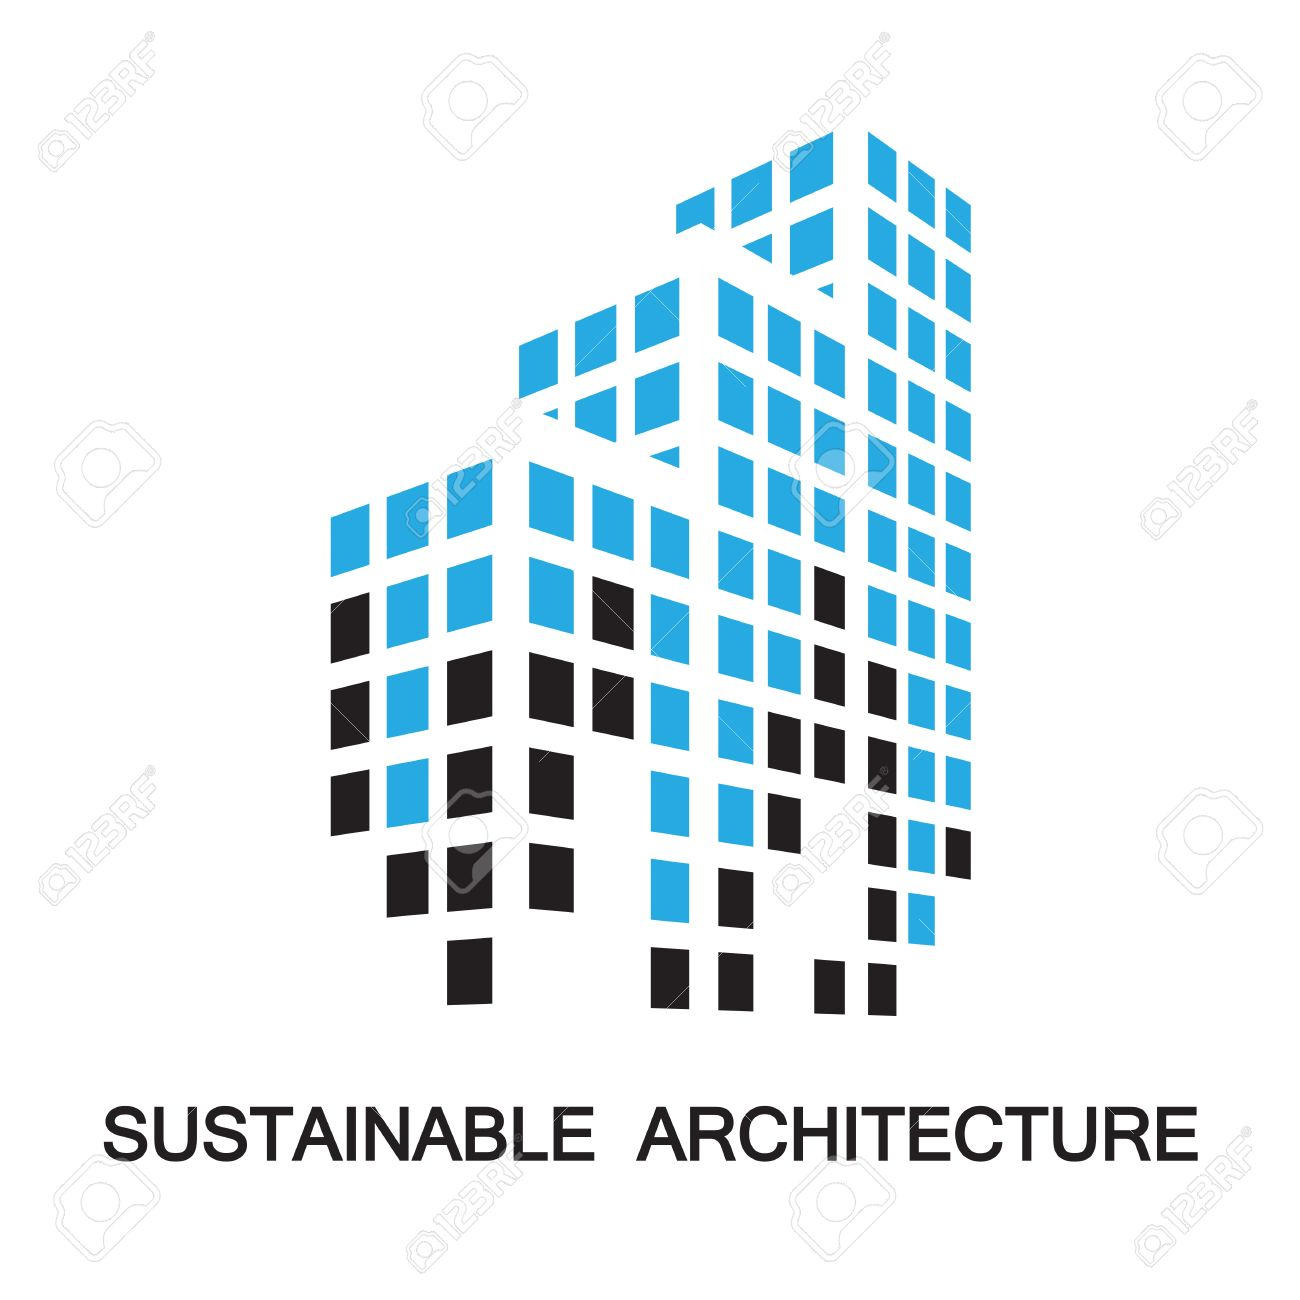 Sustainable architecturebuildingicon and symbol royalty free sustainable architecturebuildingicon and symbol stock vector 58946137 biocorpaavc Image collections